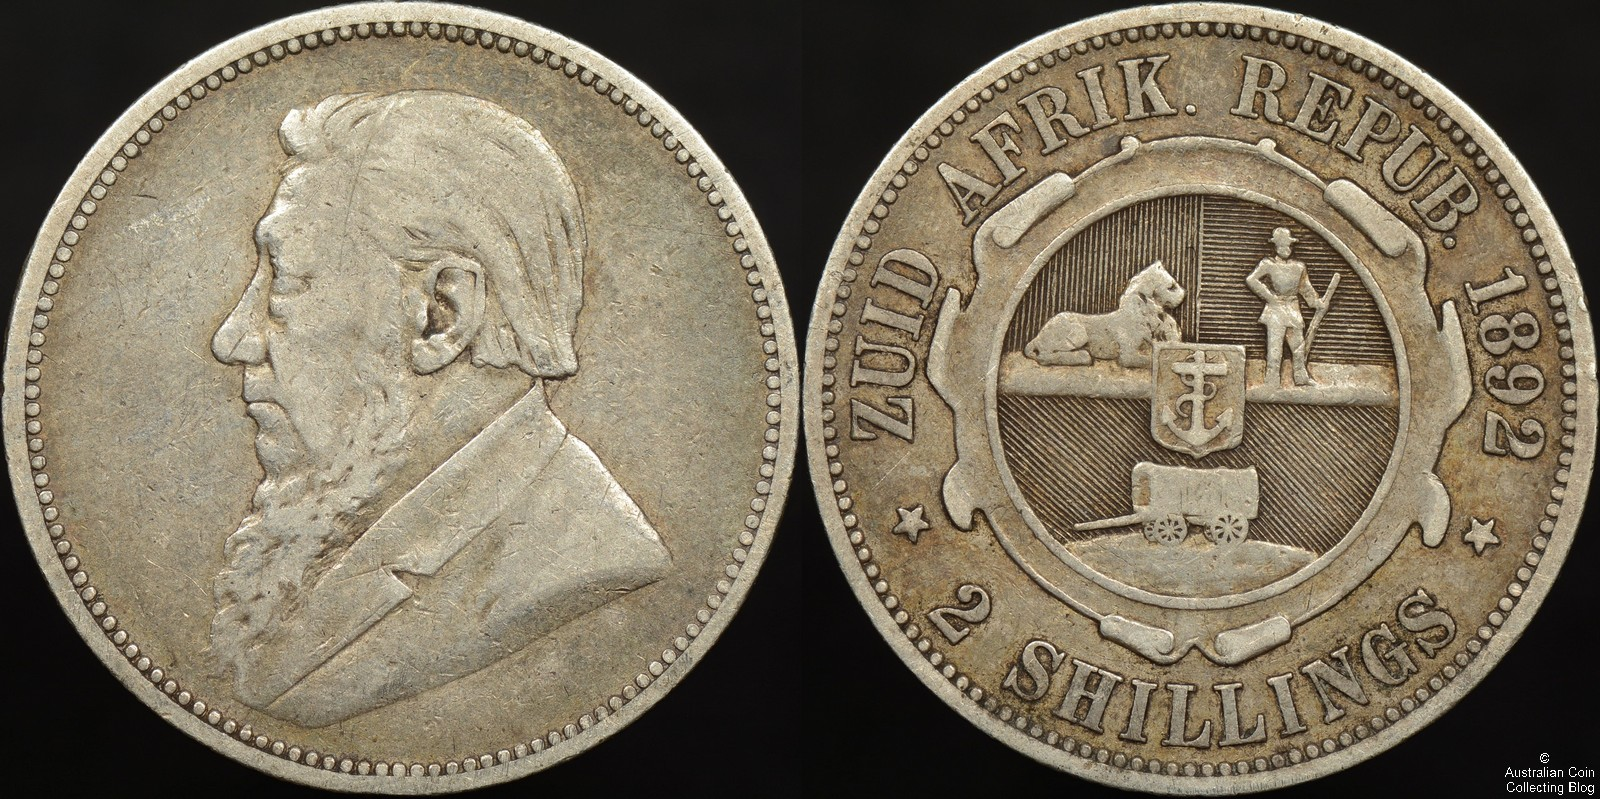 South Africa 1892 2 Shilling KM#6